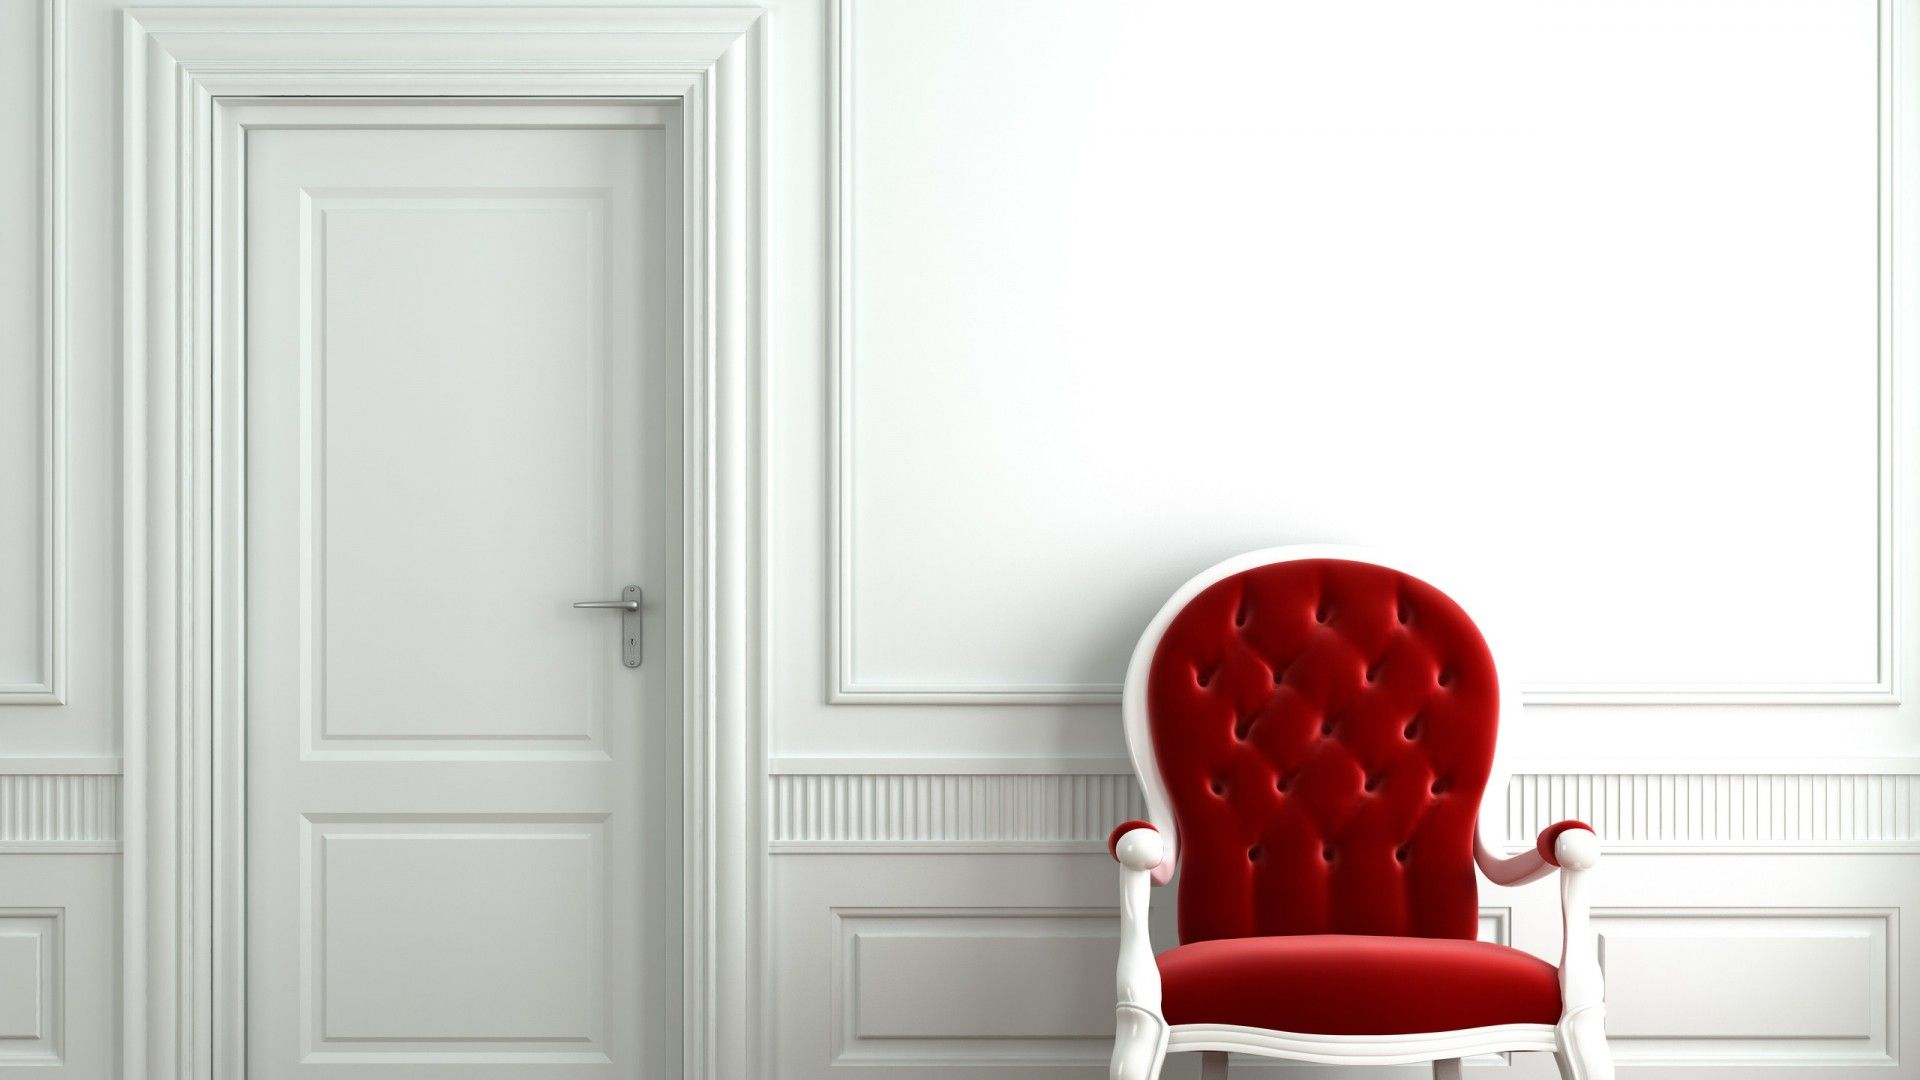 Red Chair White Room hd Wallpaperd